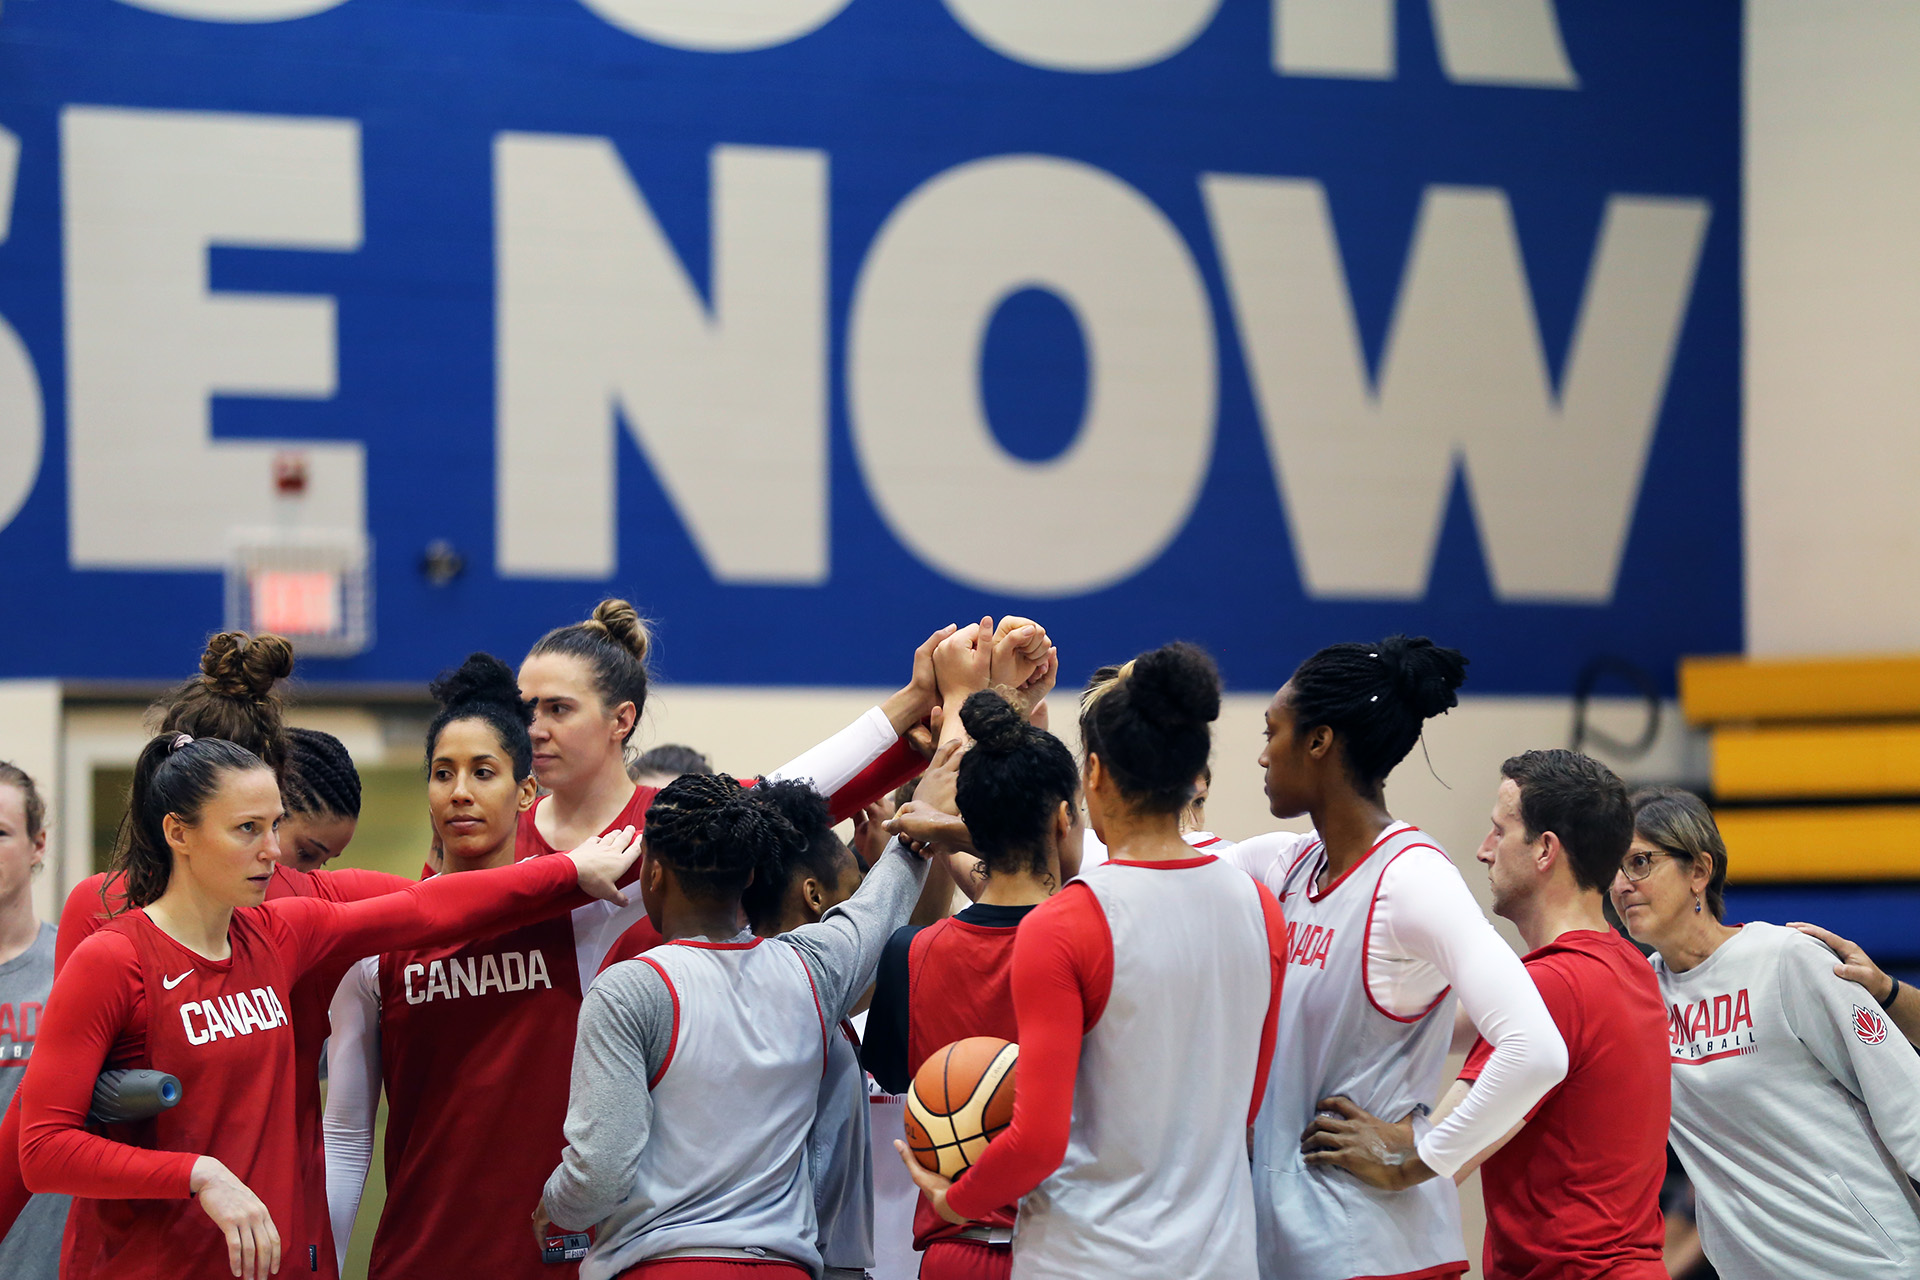 Team Canada women on the right track heading into FIBA Women's Basketball World Cup plus other takeaways